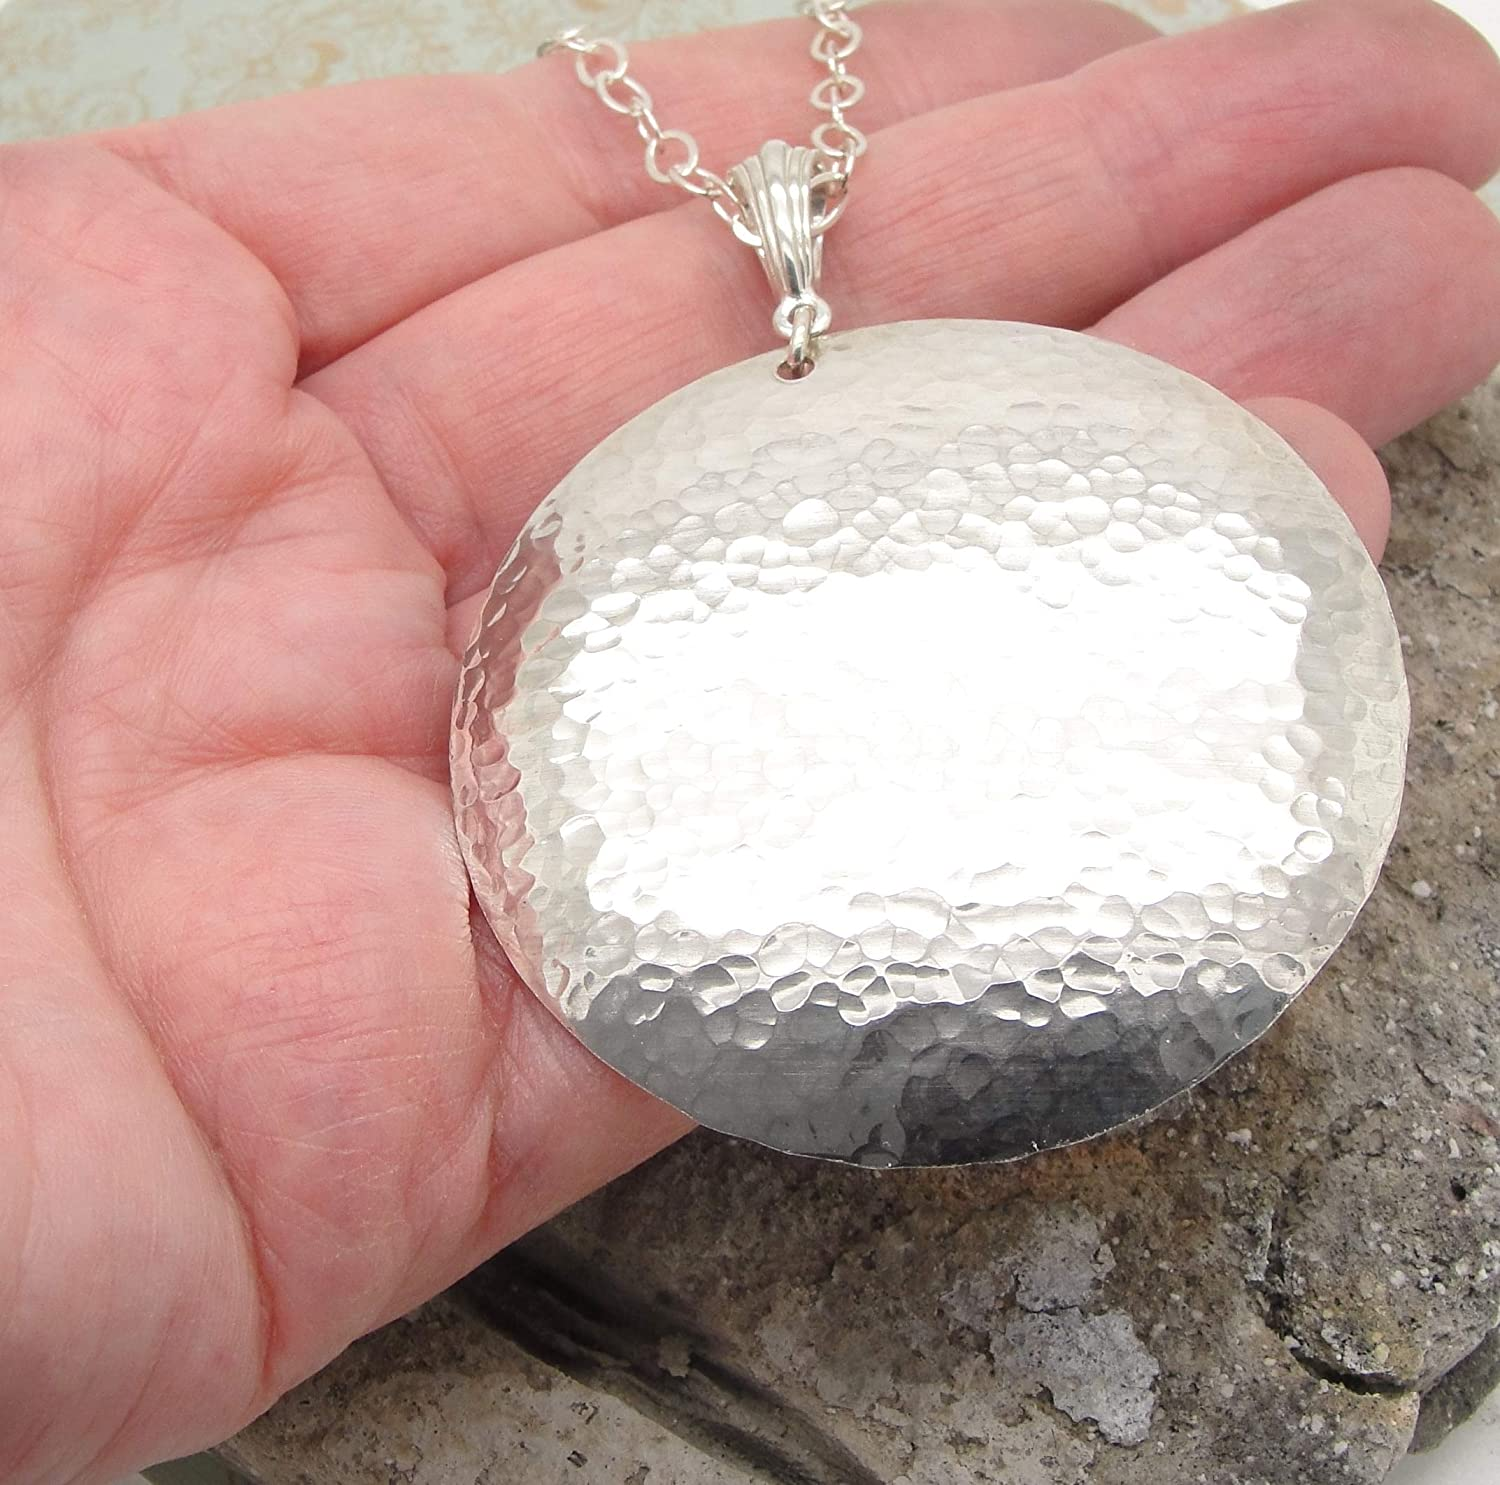 Large Disc Pendant in Hammered Sterling Silver in 1 1 2 Inch Diameter Size with No Chain